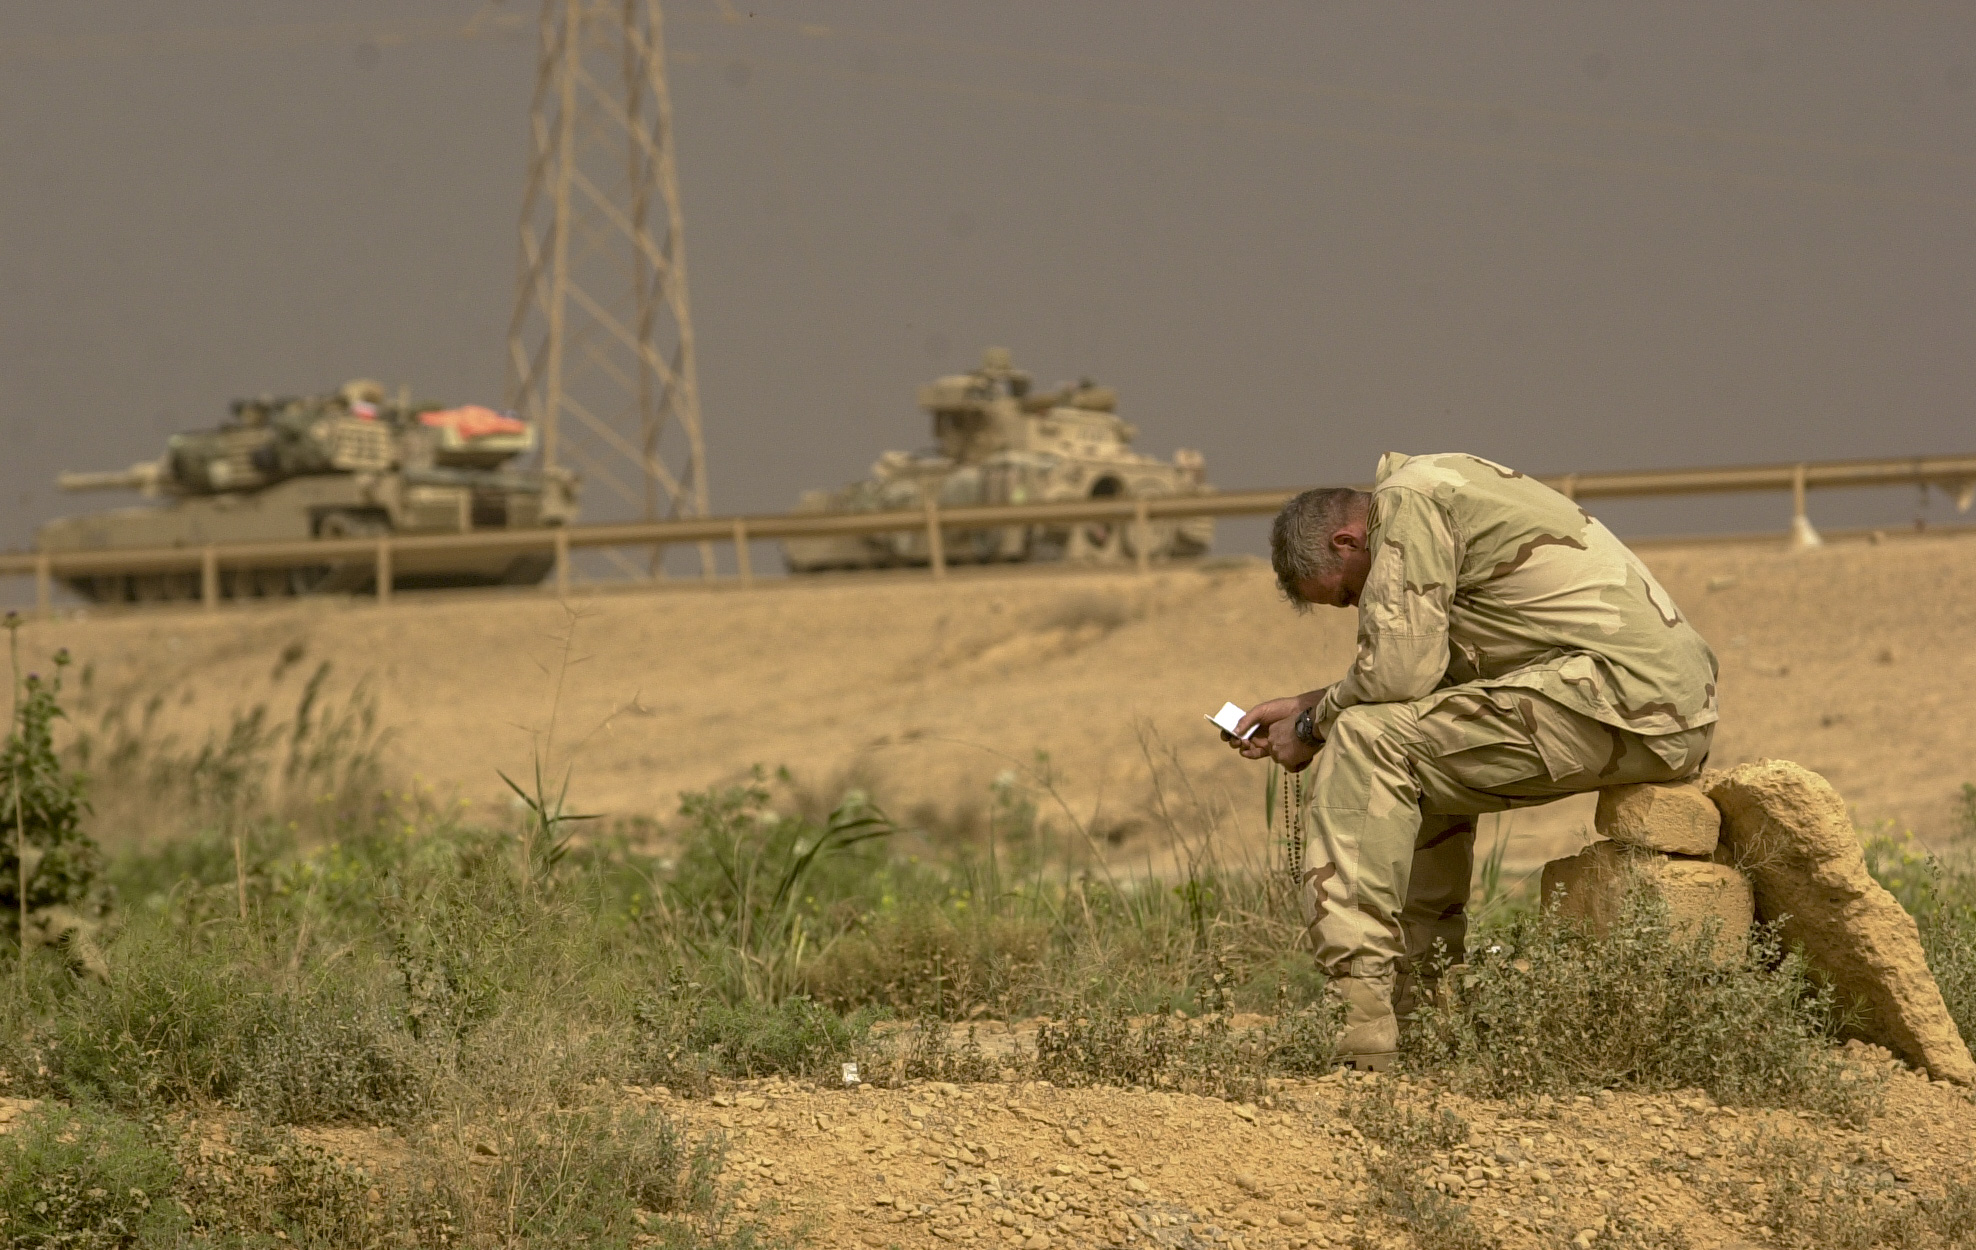 Cpt. Bill Brown, 34 of Savannah, Ga takes advantage of a pause in action to find a quiet place to pray. Brown is with the U.S. Army's 3rd Squadron, 7th Cavalry Regiment. The Cavalry is currently holding a blocking position in the south of Baghdad to control all traffic moving in and out of the city. (Warren Zinn/Army Times)